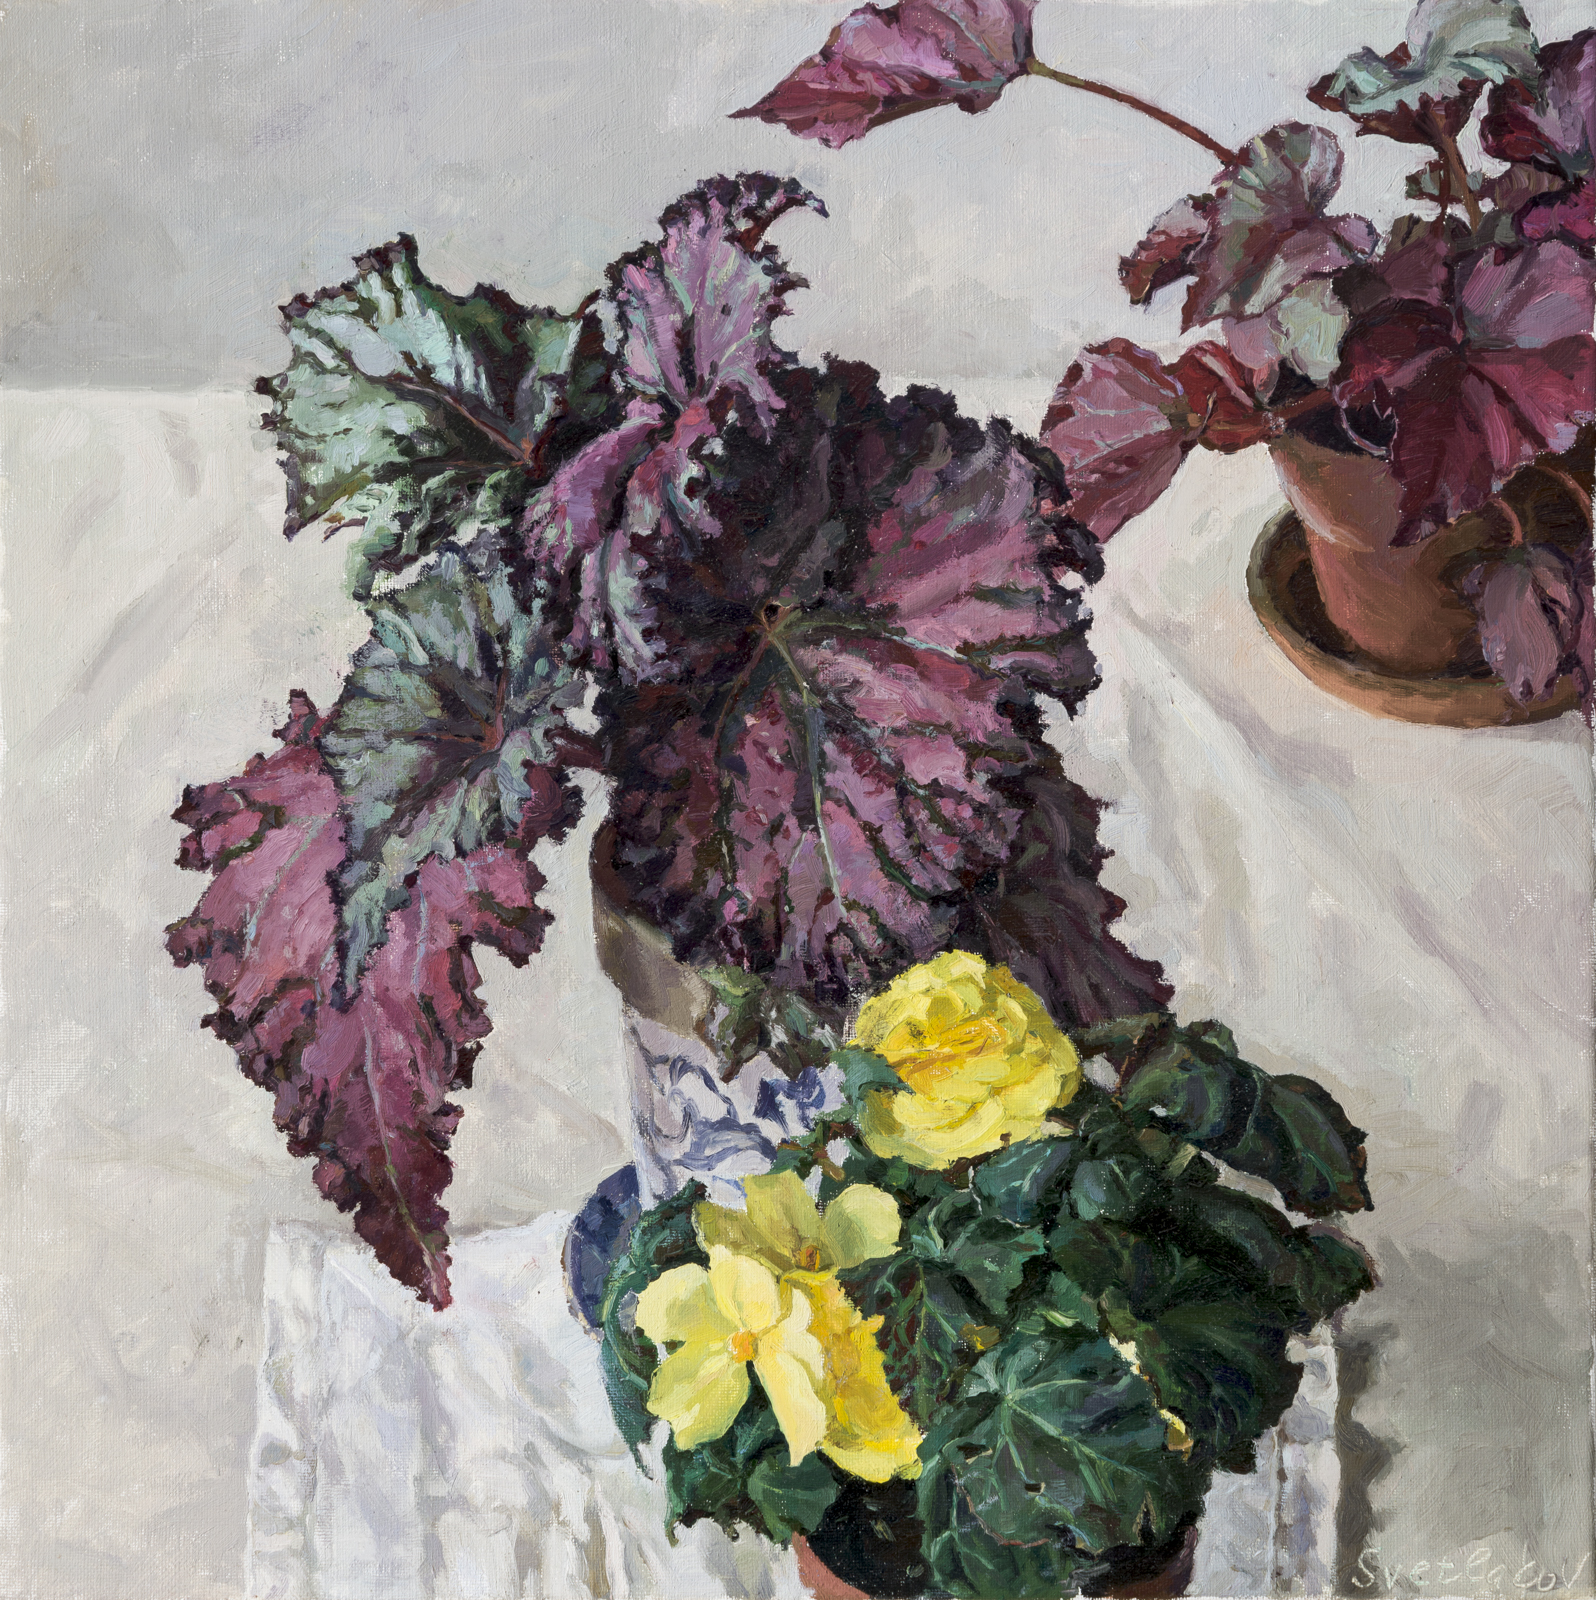 Blossoming Begonia: oil on canvas, 55x55 cm.